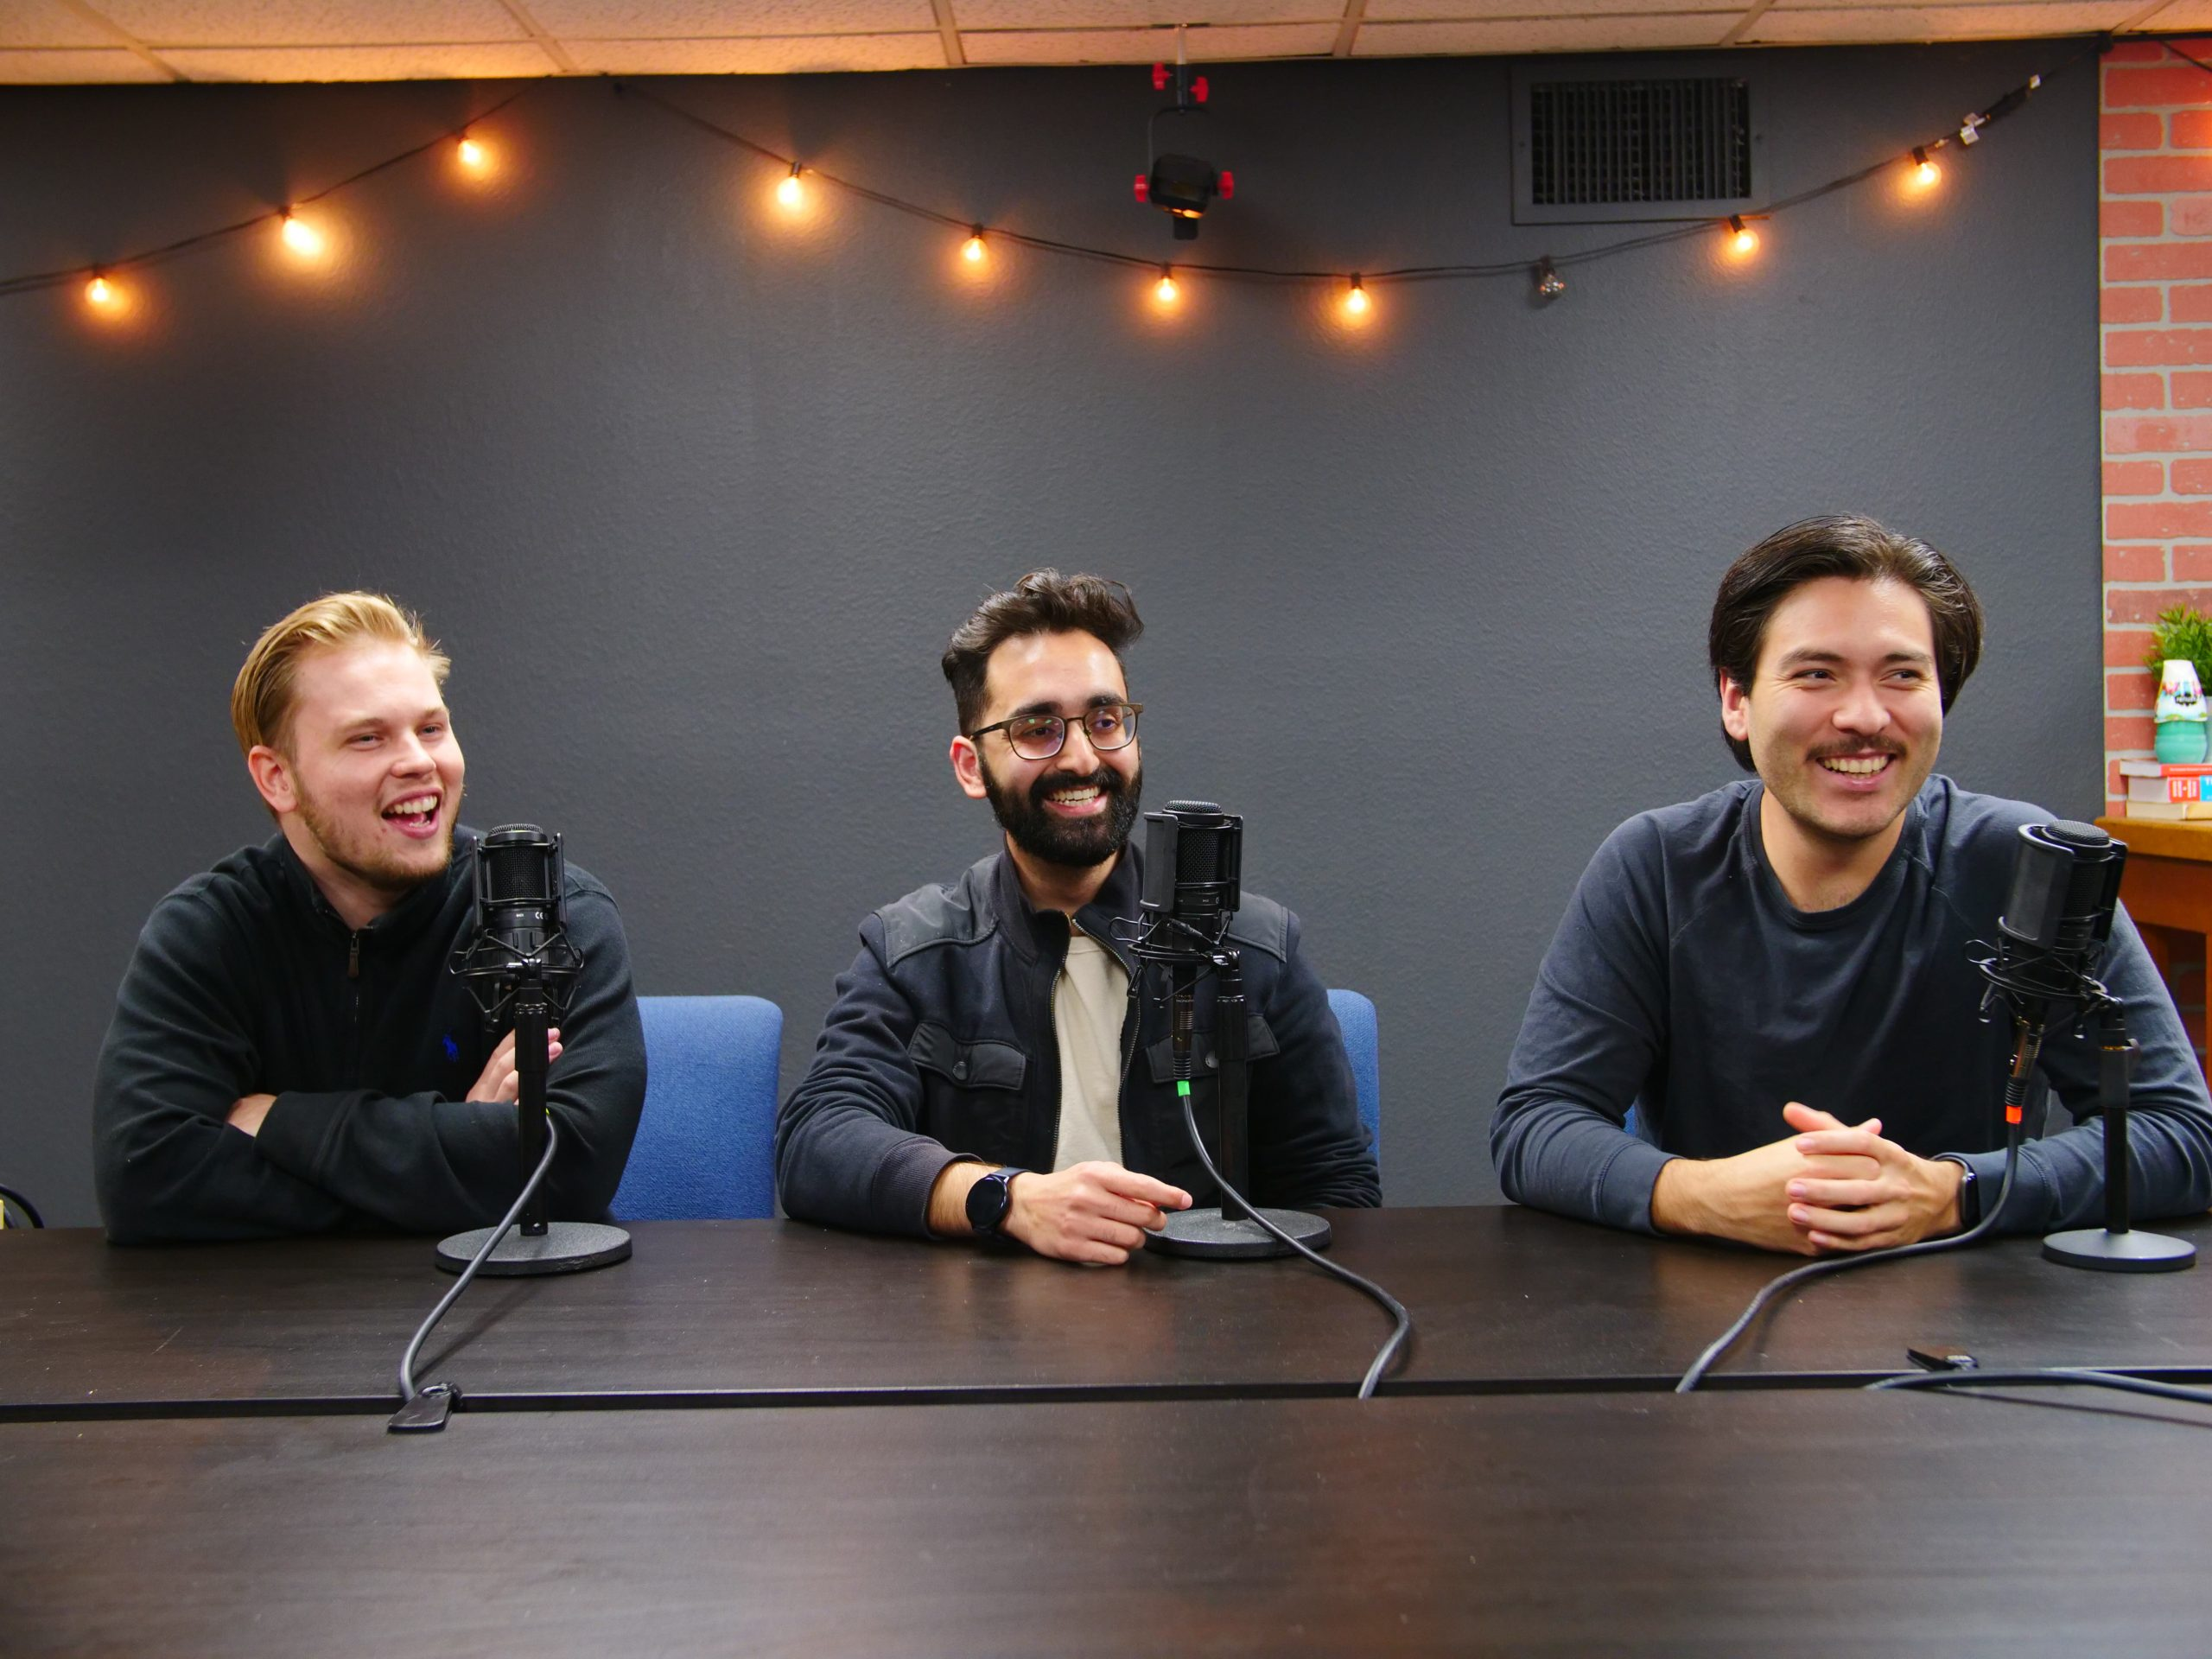 Founders of The Brew platform